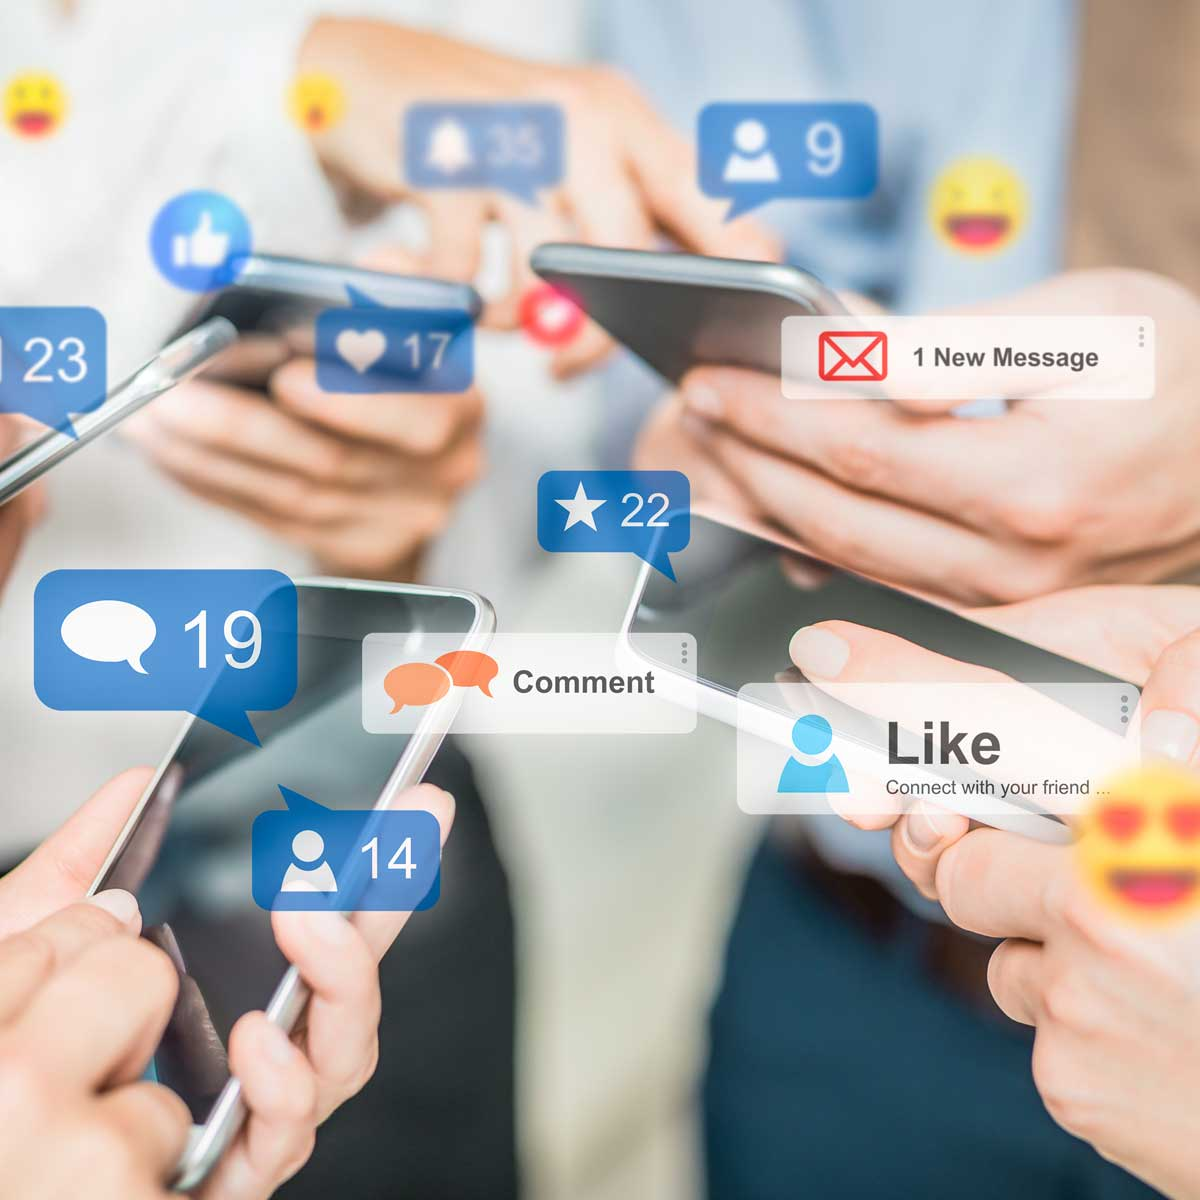 Social media concept. hands texting and checking notifications on phones and apps; crowded in a circle of phones and outstretched arms